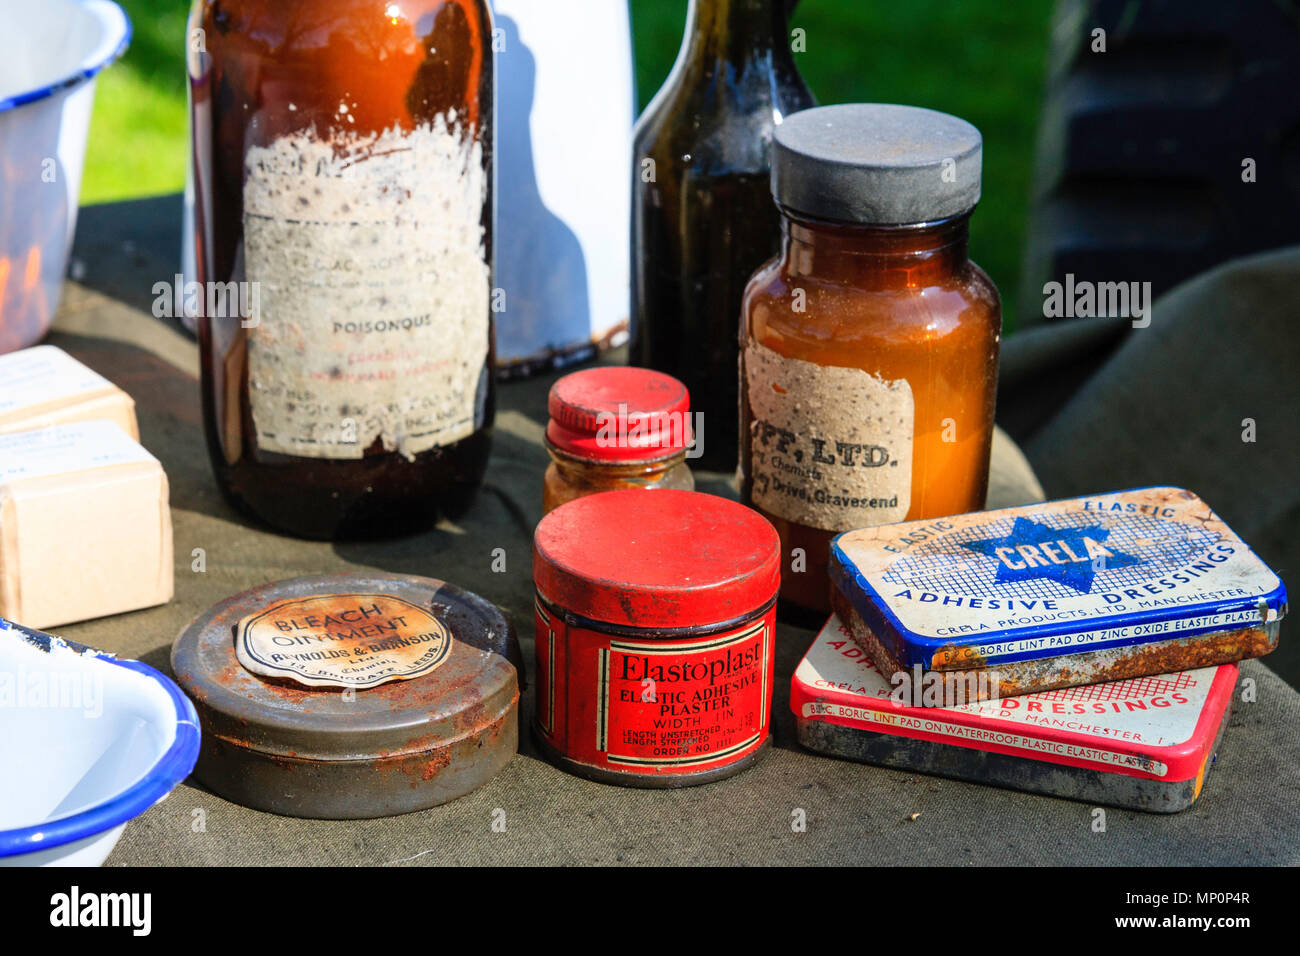 Various World war two medical items set out on a table, elastoplast plasters, tinned lint pads, other items. - Stock Image